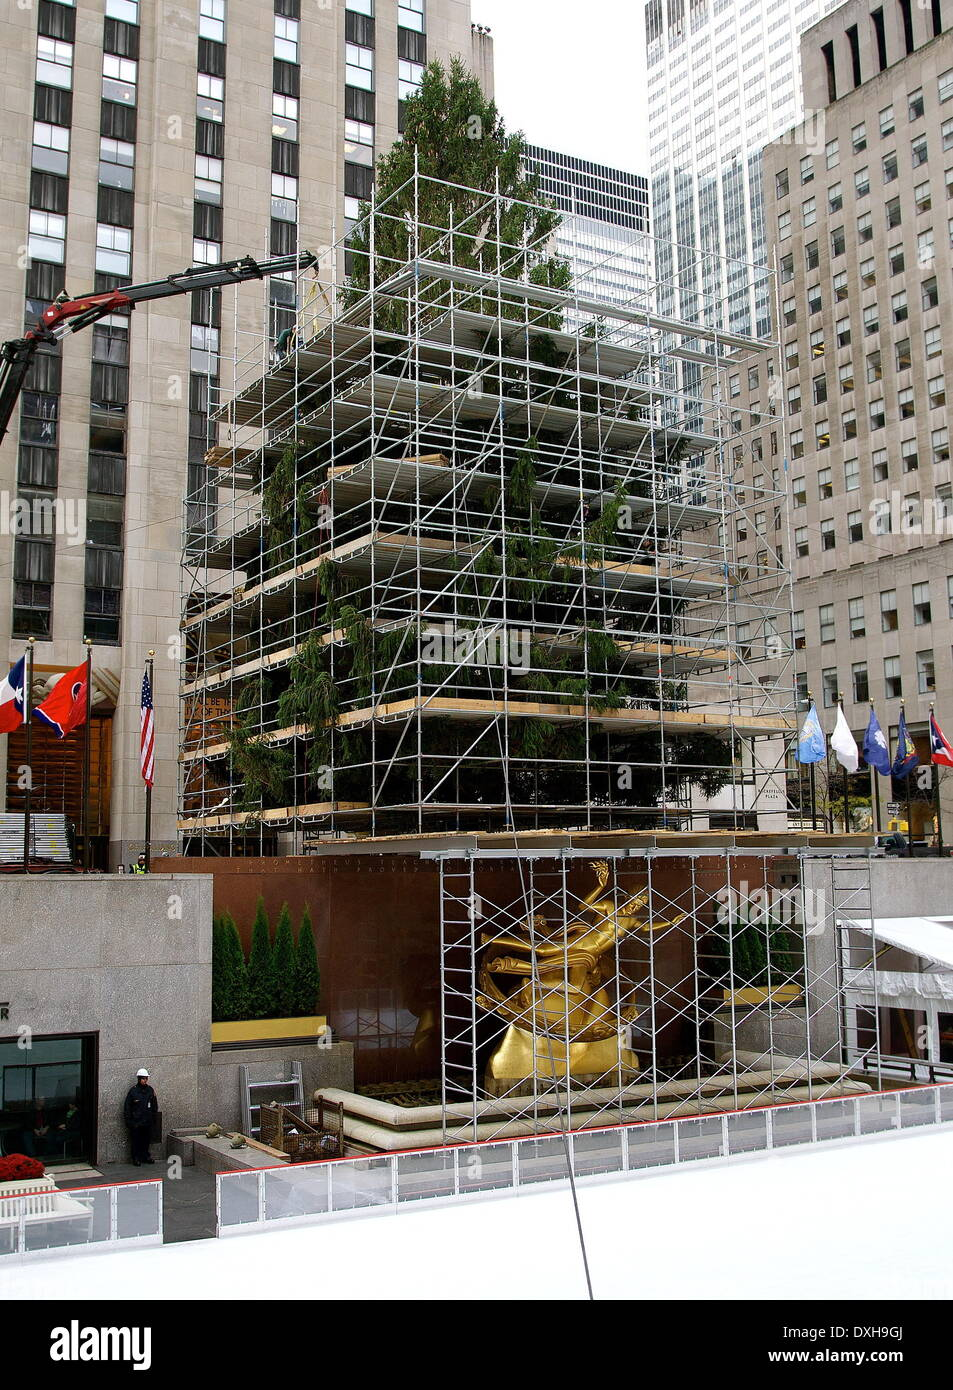 Rockefeller Christmas Tree 2020 Scaffolding Construction workers build a scaffold around the 2012 Rockefeller